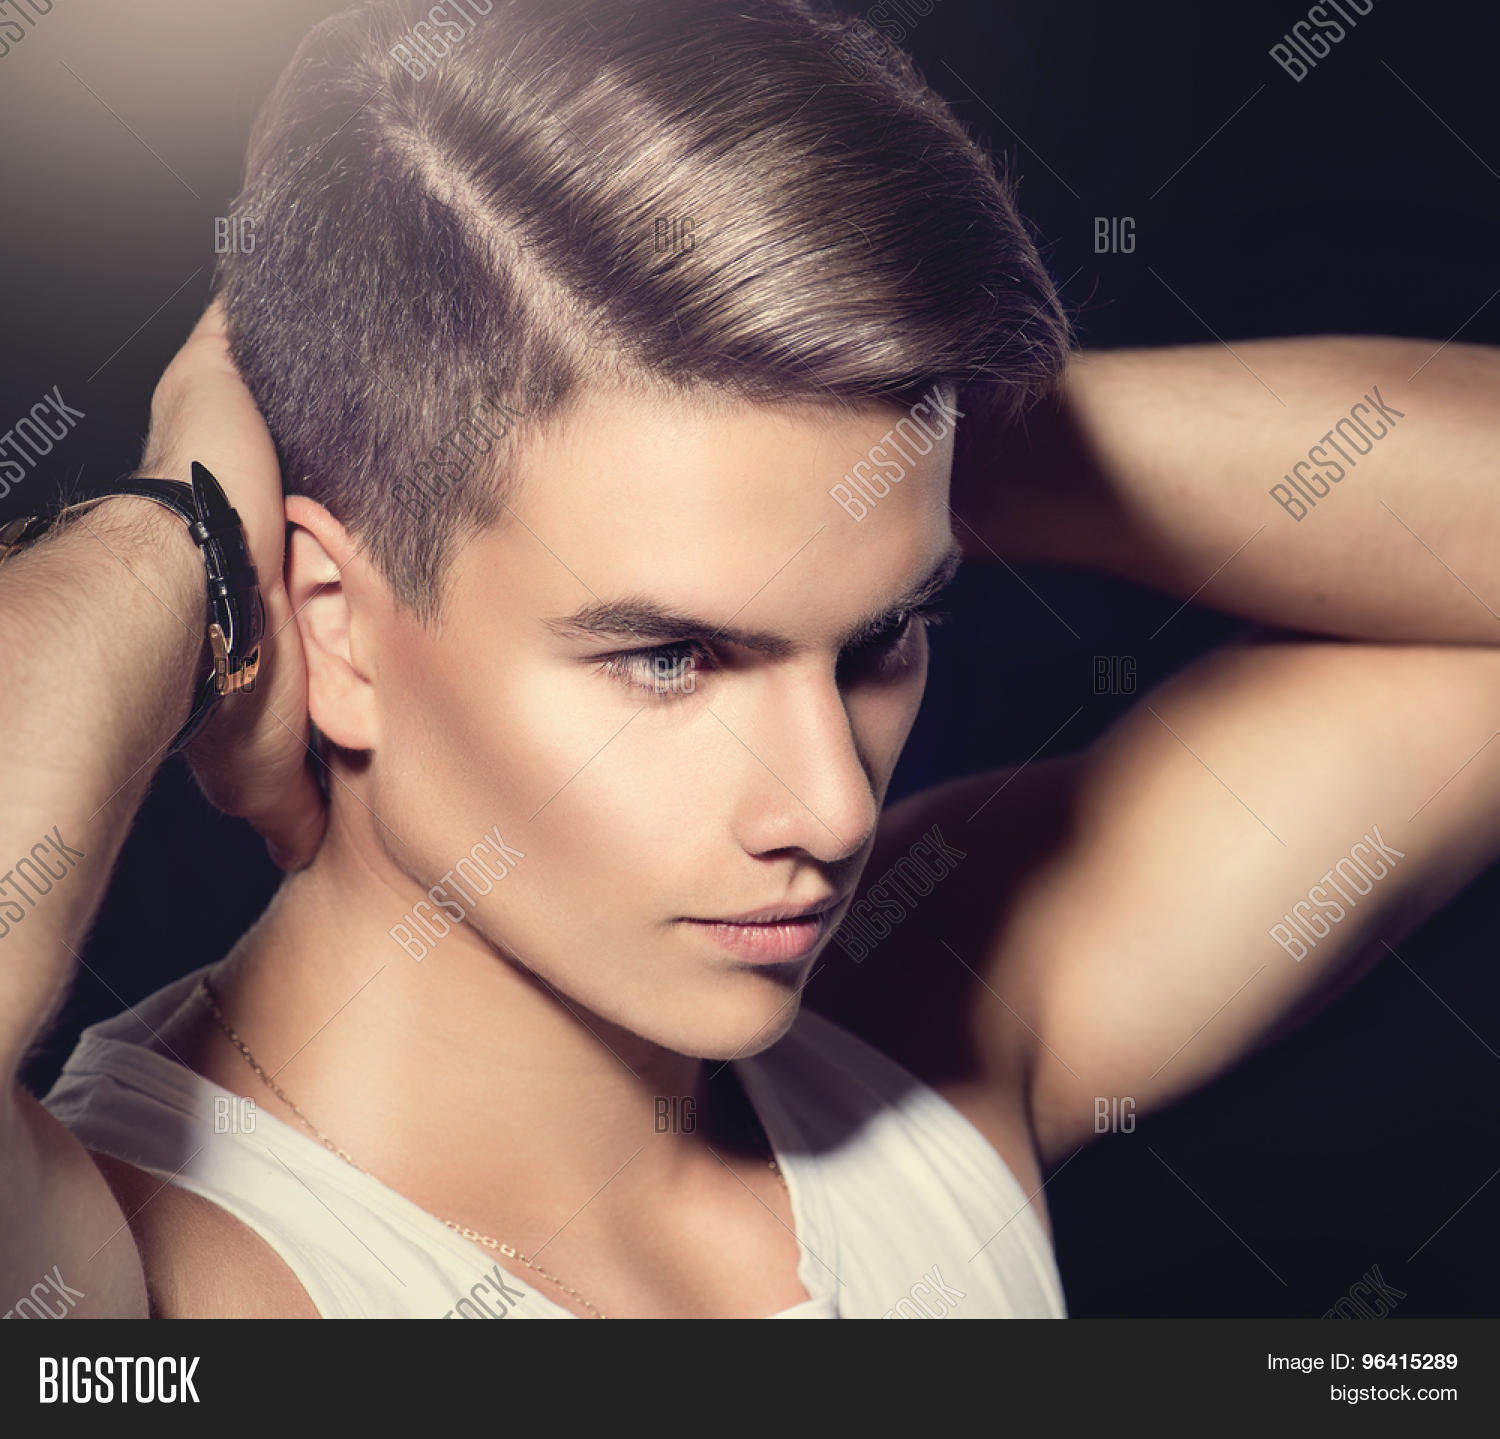 Handsome Young Man Fashion Young Image &amp Photo Bigstock - Boy Hairstyle